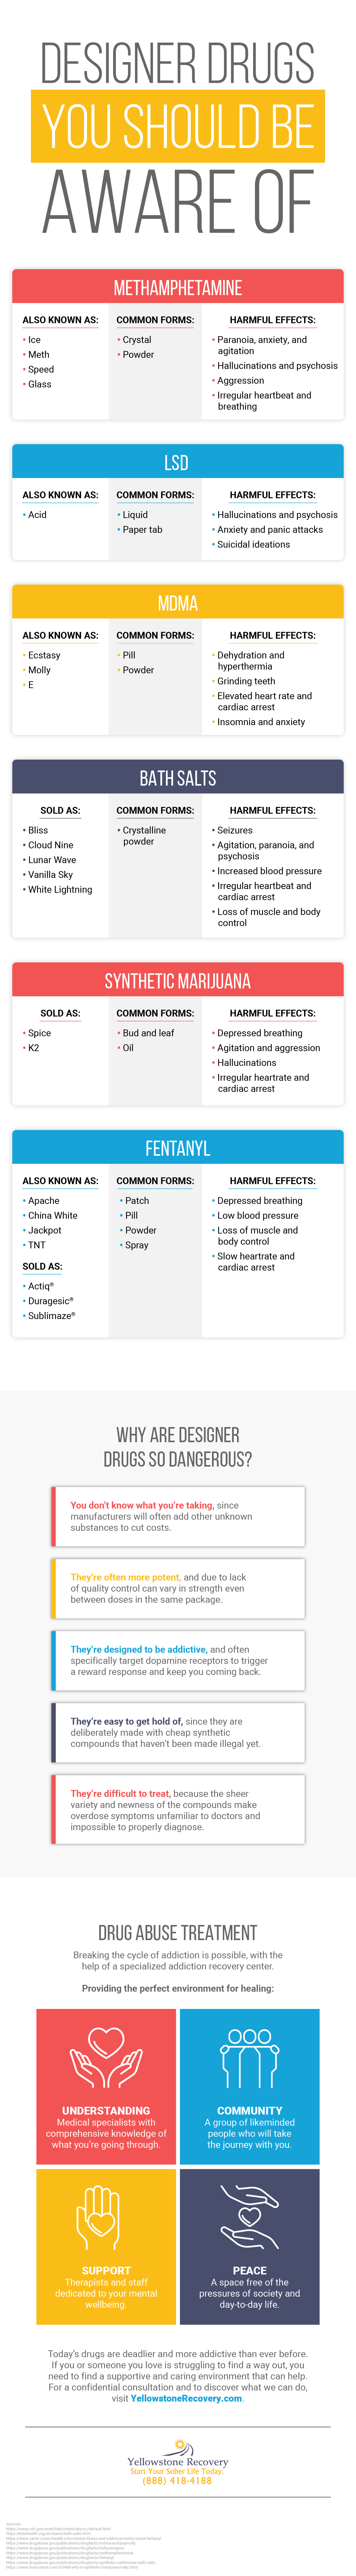 Designer Drugs You Should Be Aware Of (Infographic)